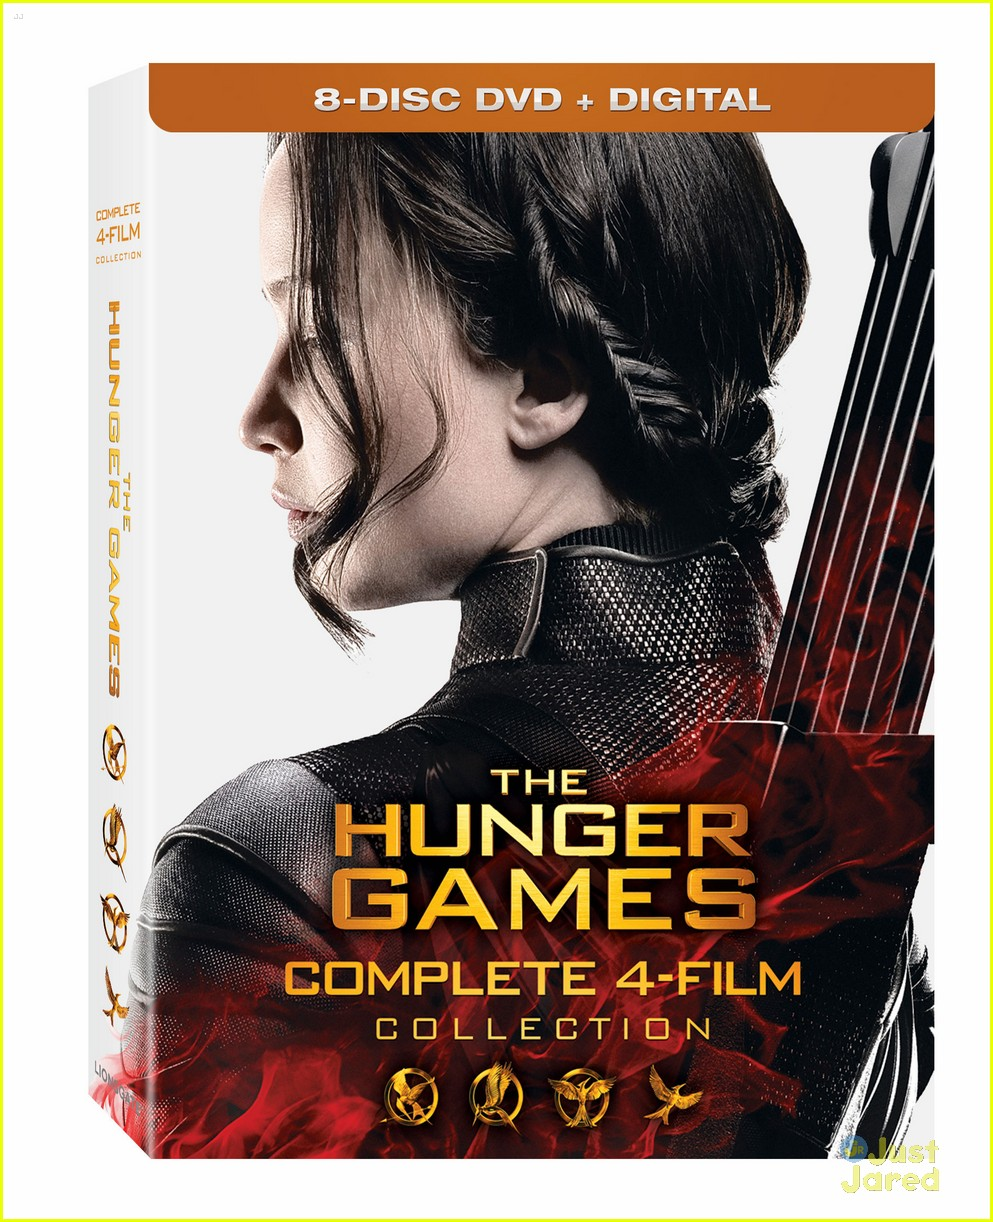 hunger games complete collection package details 04